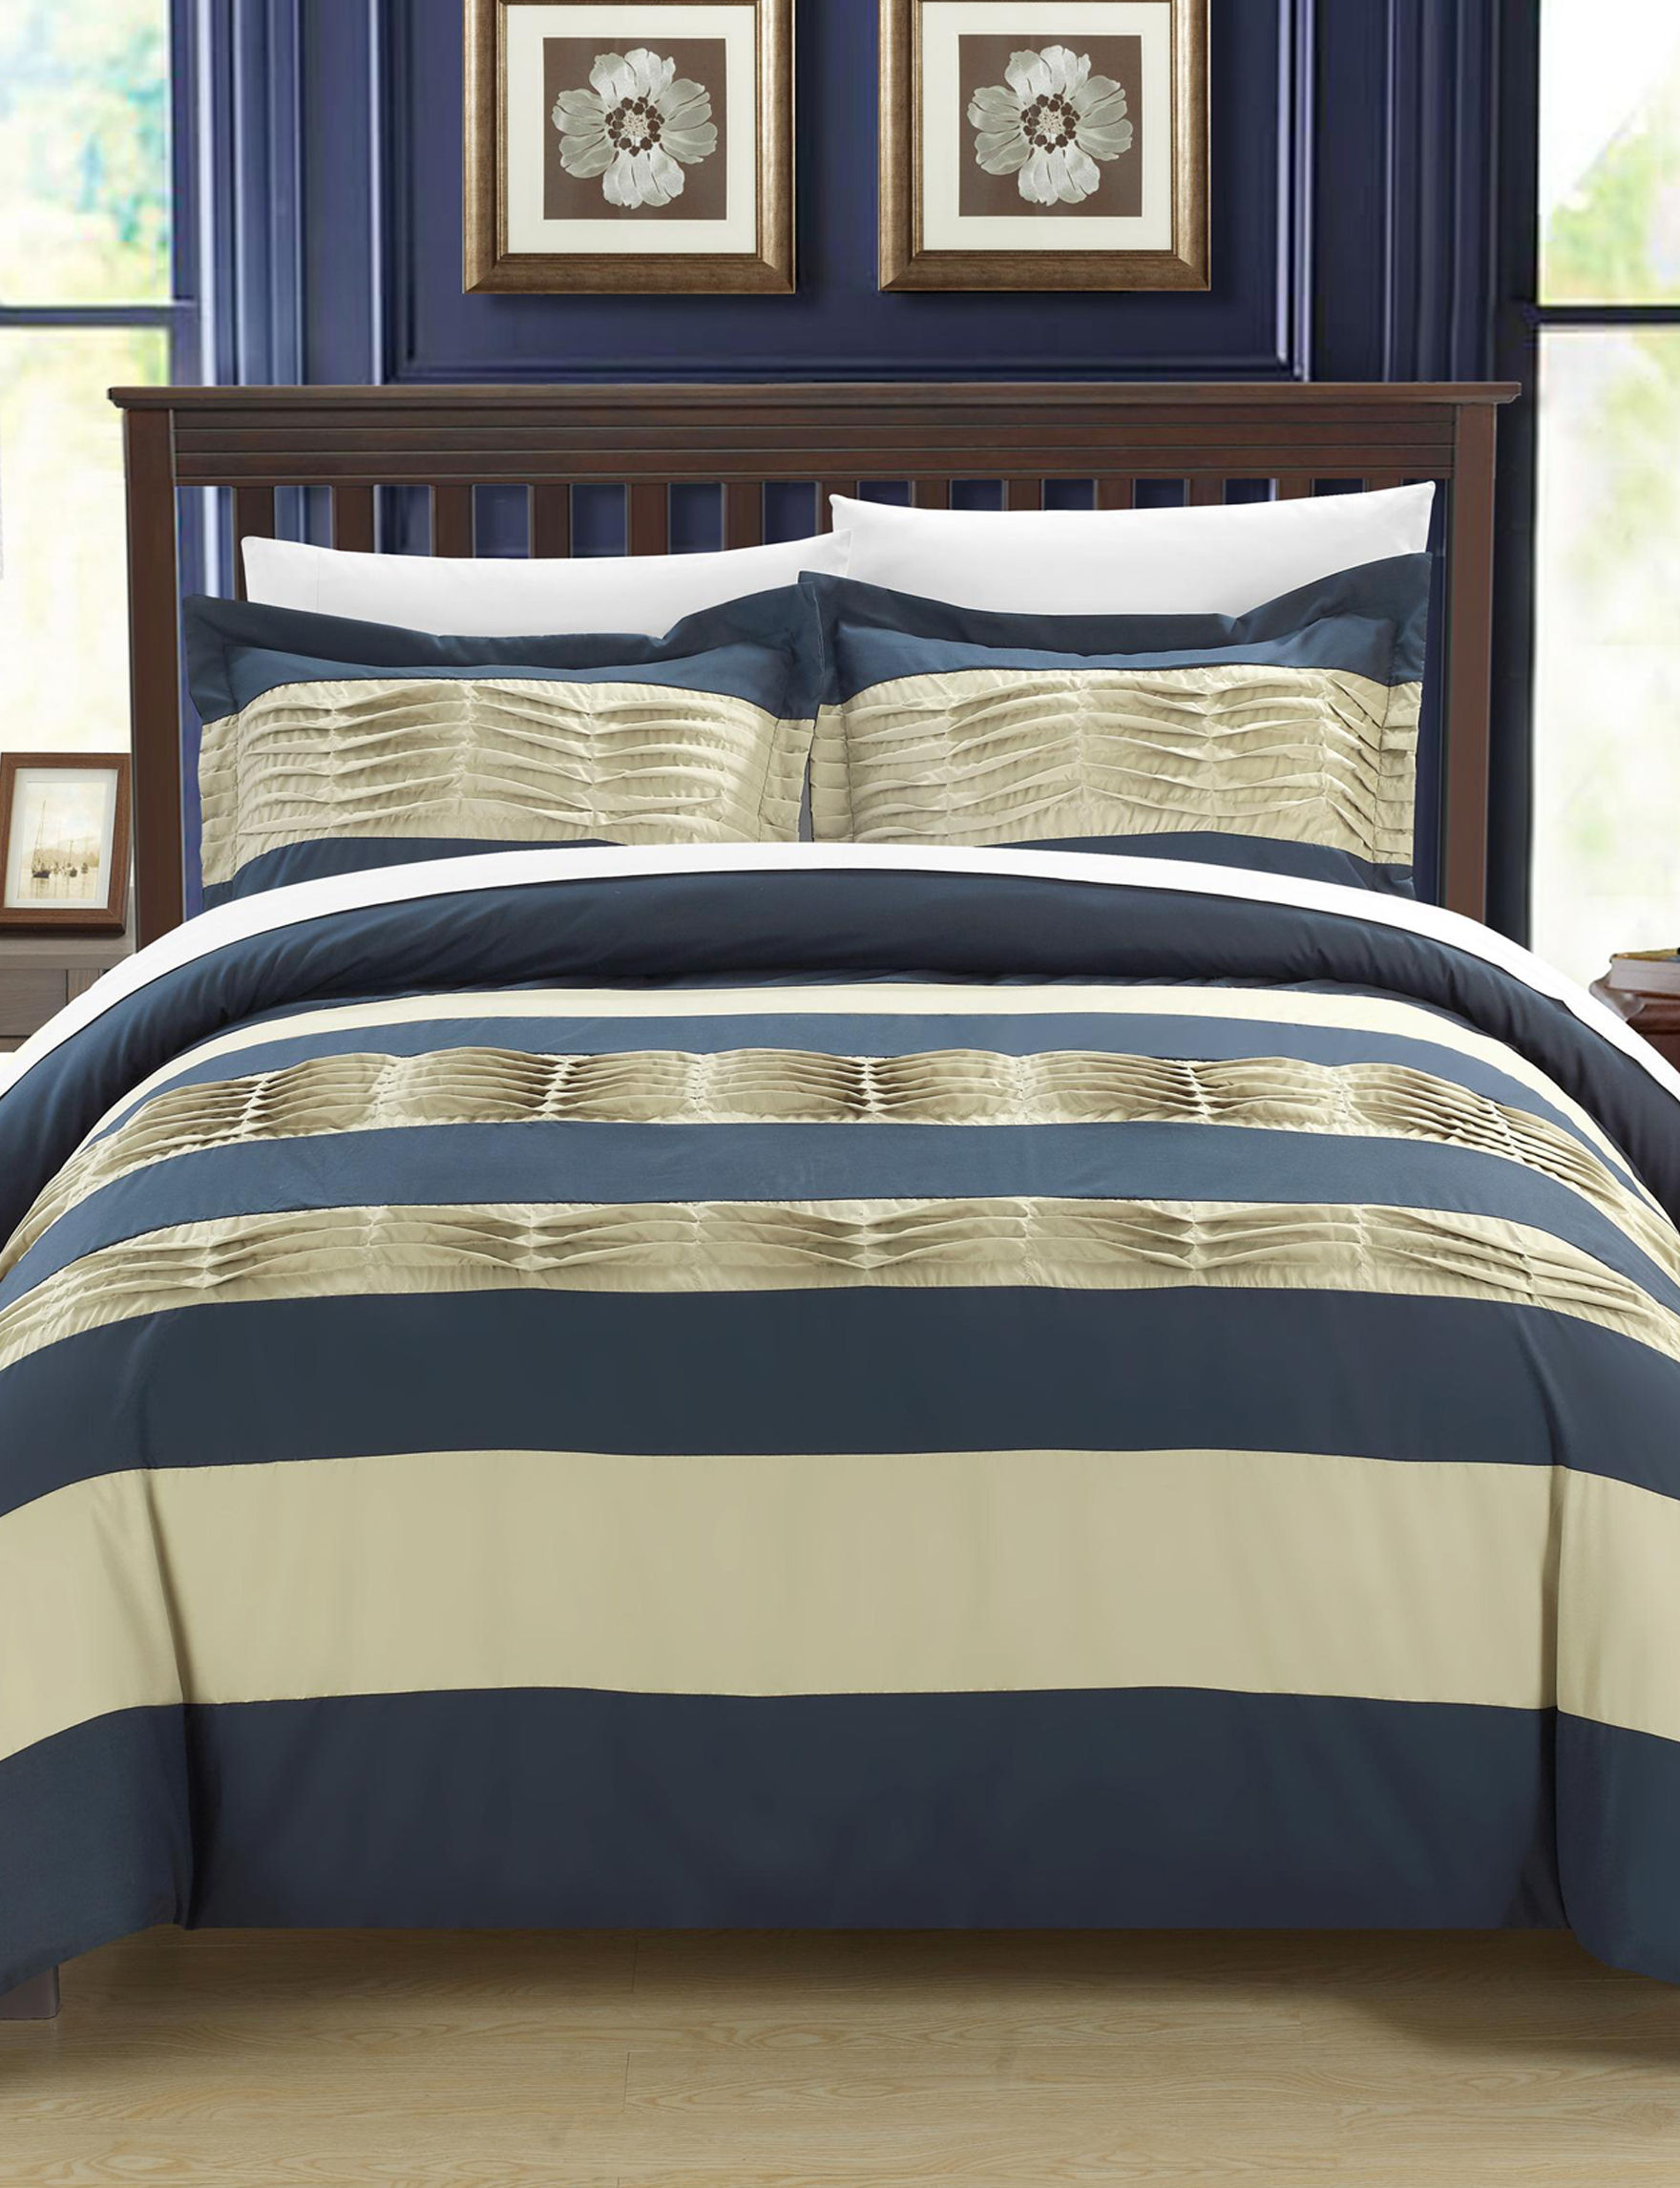 Chic Home Design Navy Duvets & Duvet Sets